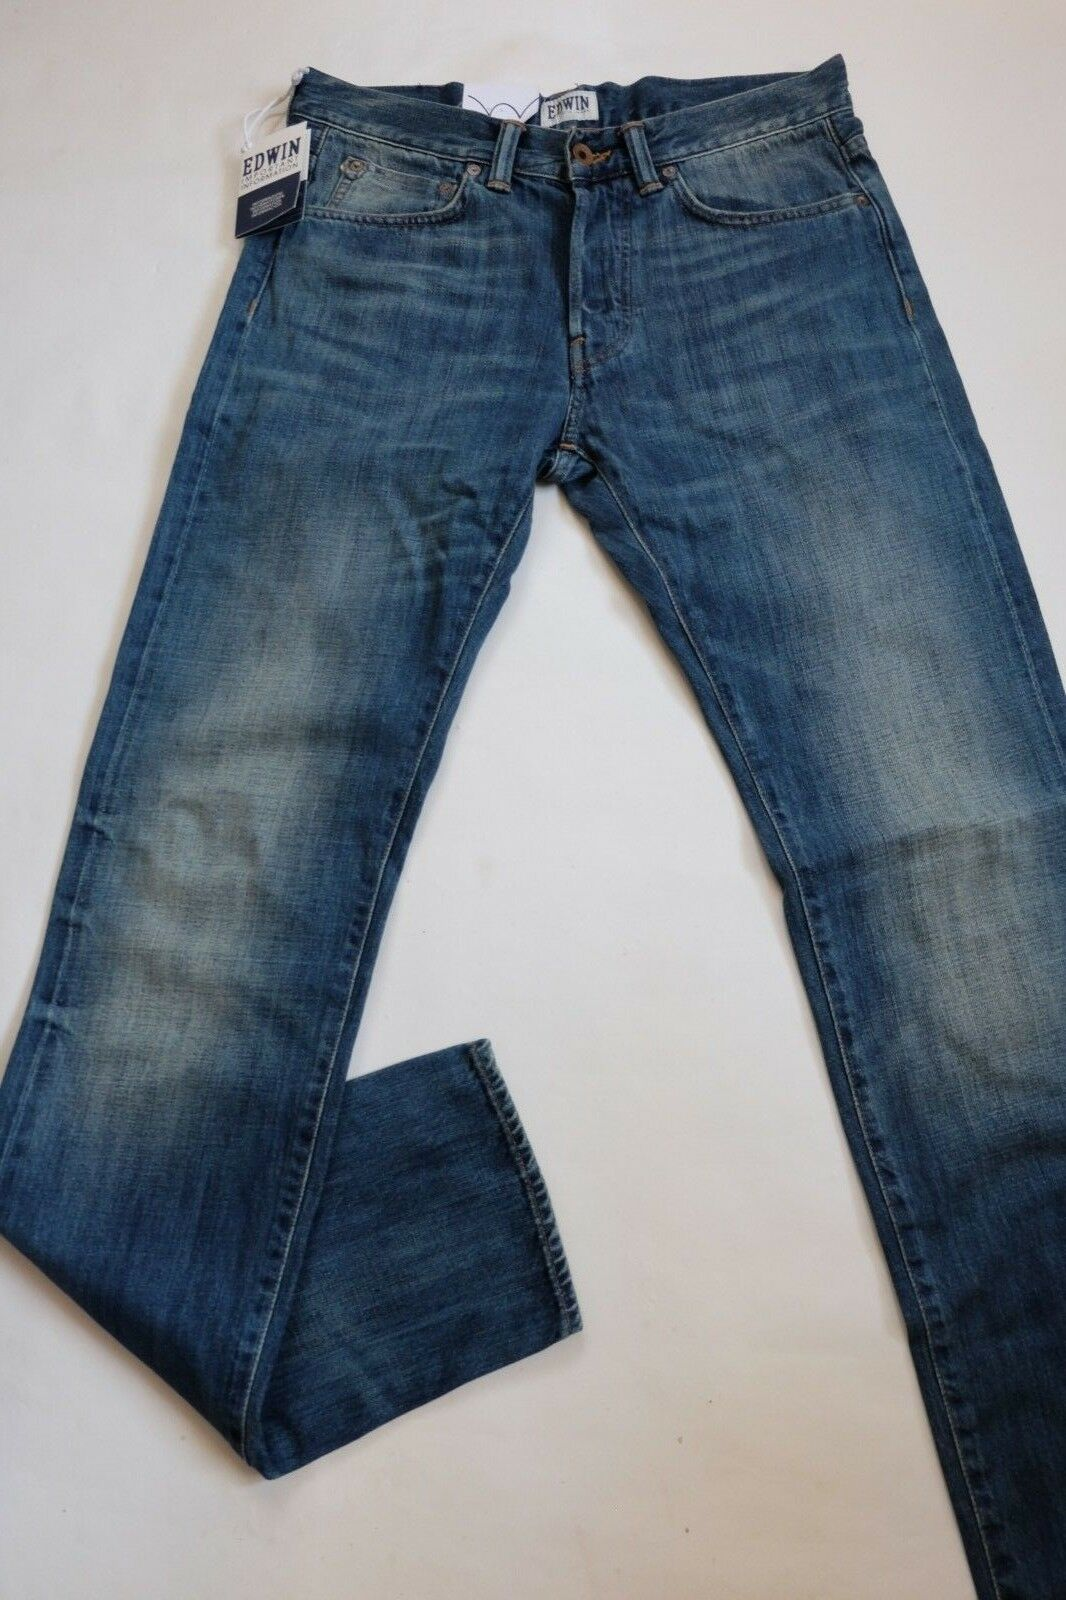 JEANS EDWIN HOMME ED 80 SLIM TAPERED (white listed -mid slush) W30  L34 VAL